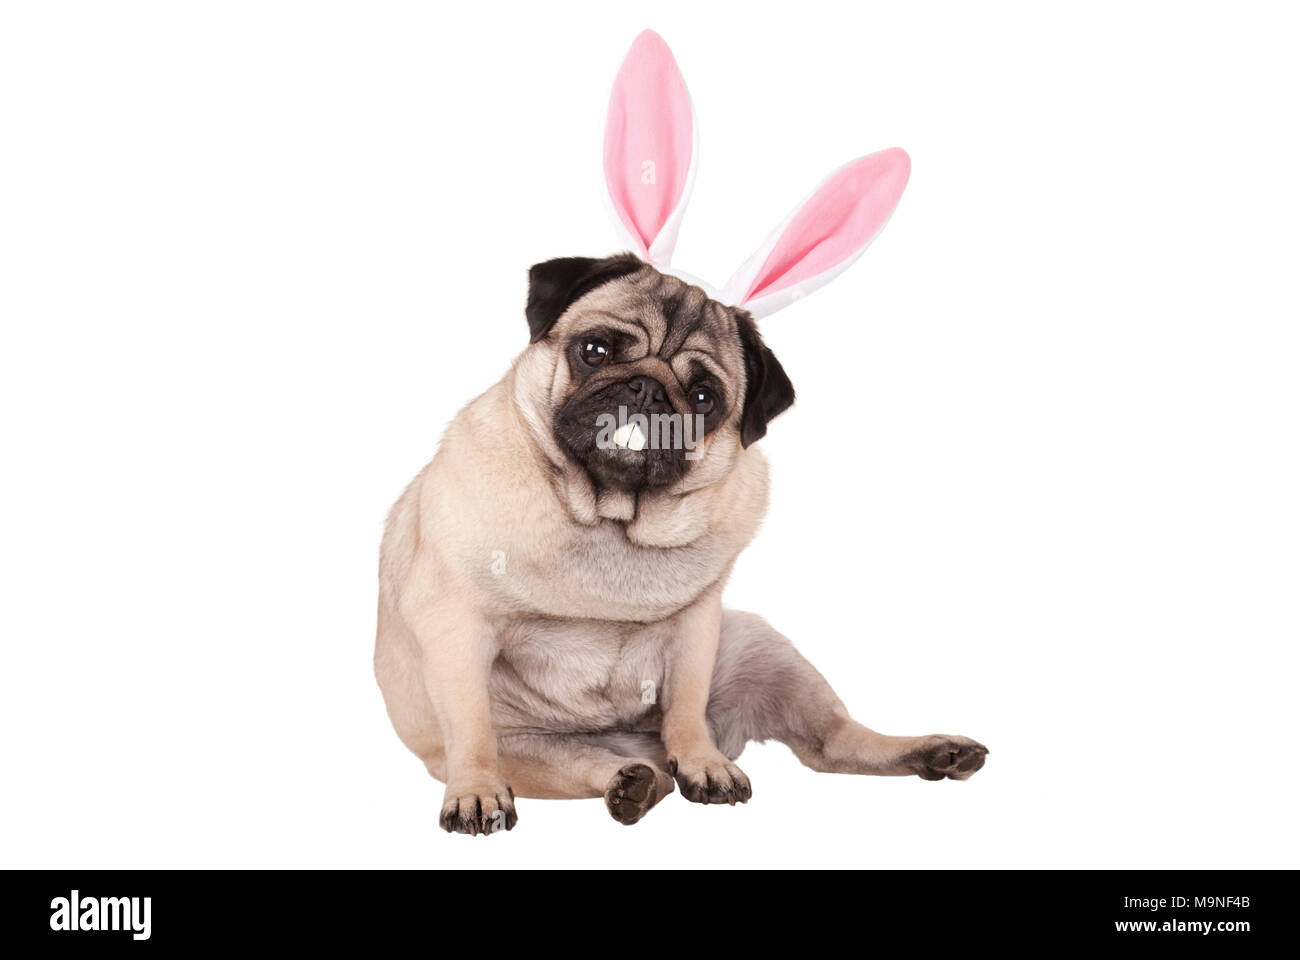 adorable cute pug puppy dog sitting down with easter bunny ears and teeth, isolated on white background - Stock Image